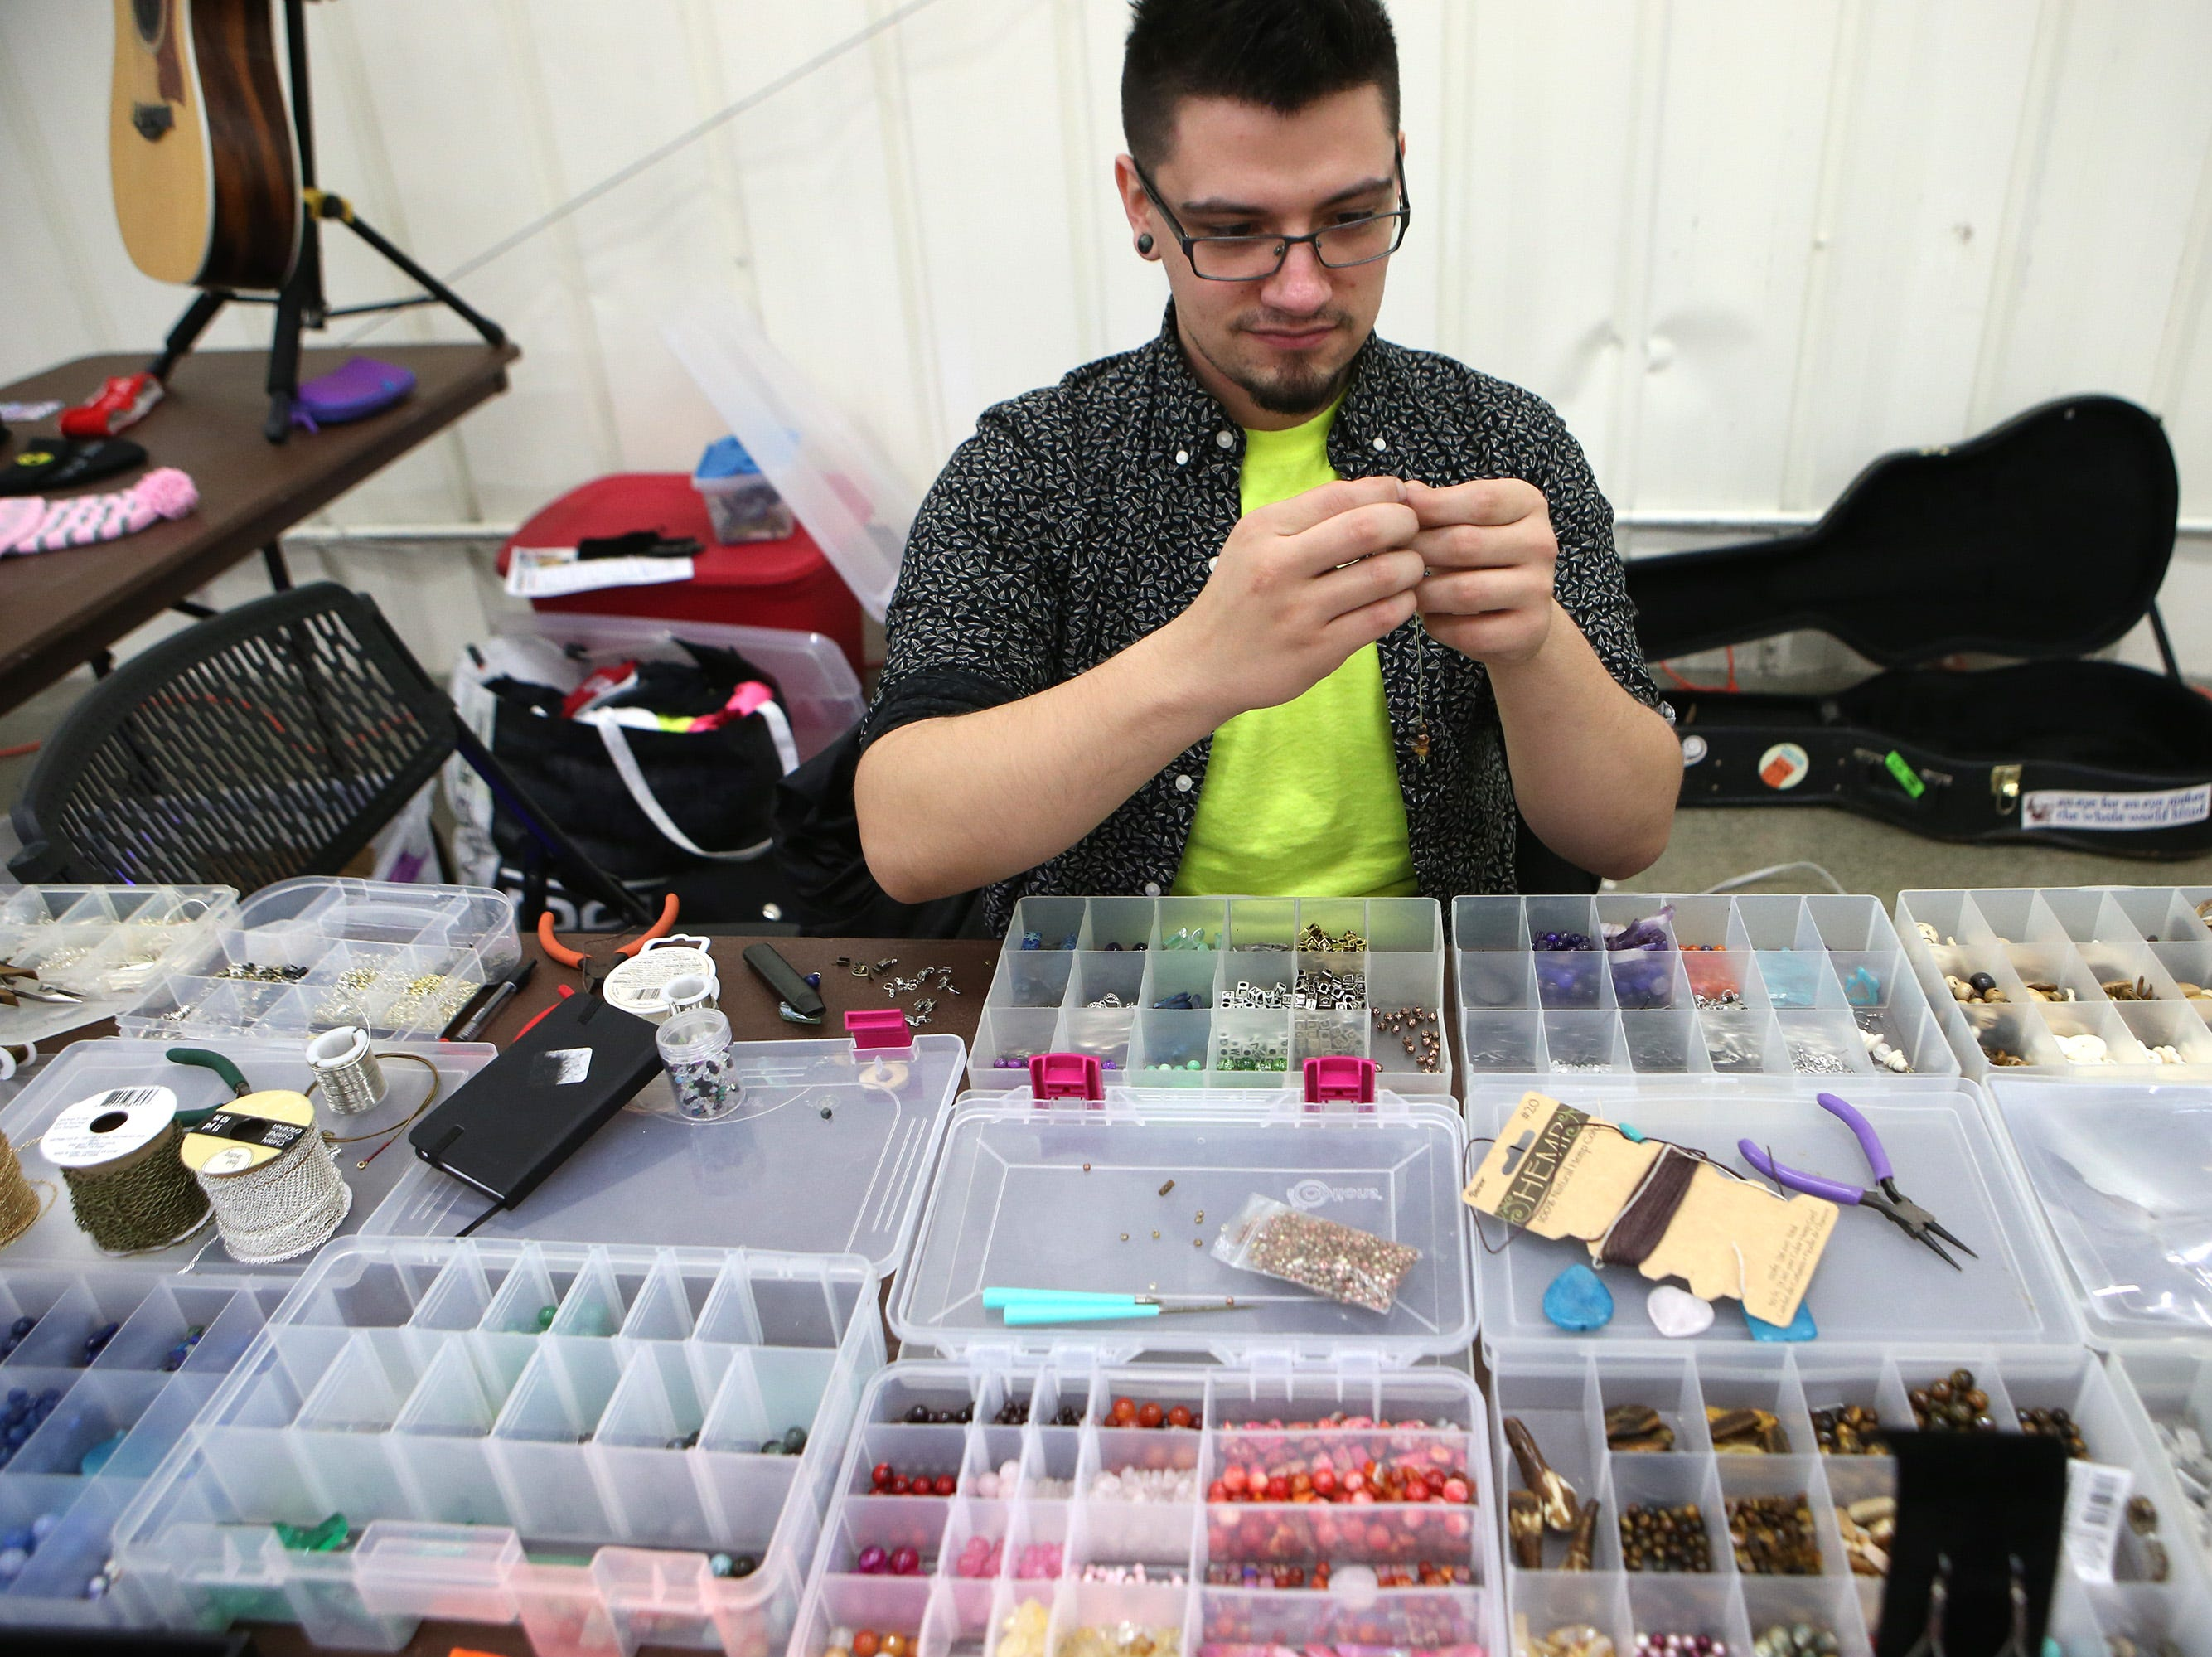 Joey Stone of Waukesha creates jewelry using guitar strings during business winter vendor event hosted by Beer Me. Waukee, a beer-inspired Milwaukee apparel brand, at the Waukesha County Expo Center on Jan. 19.